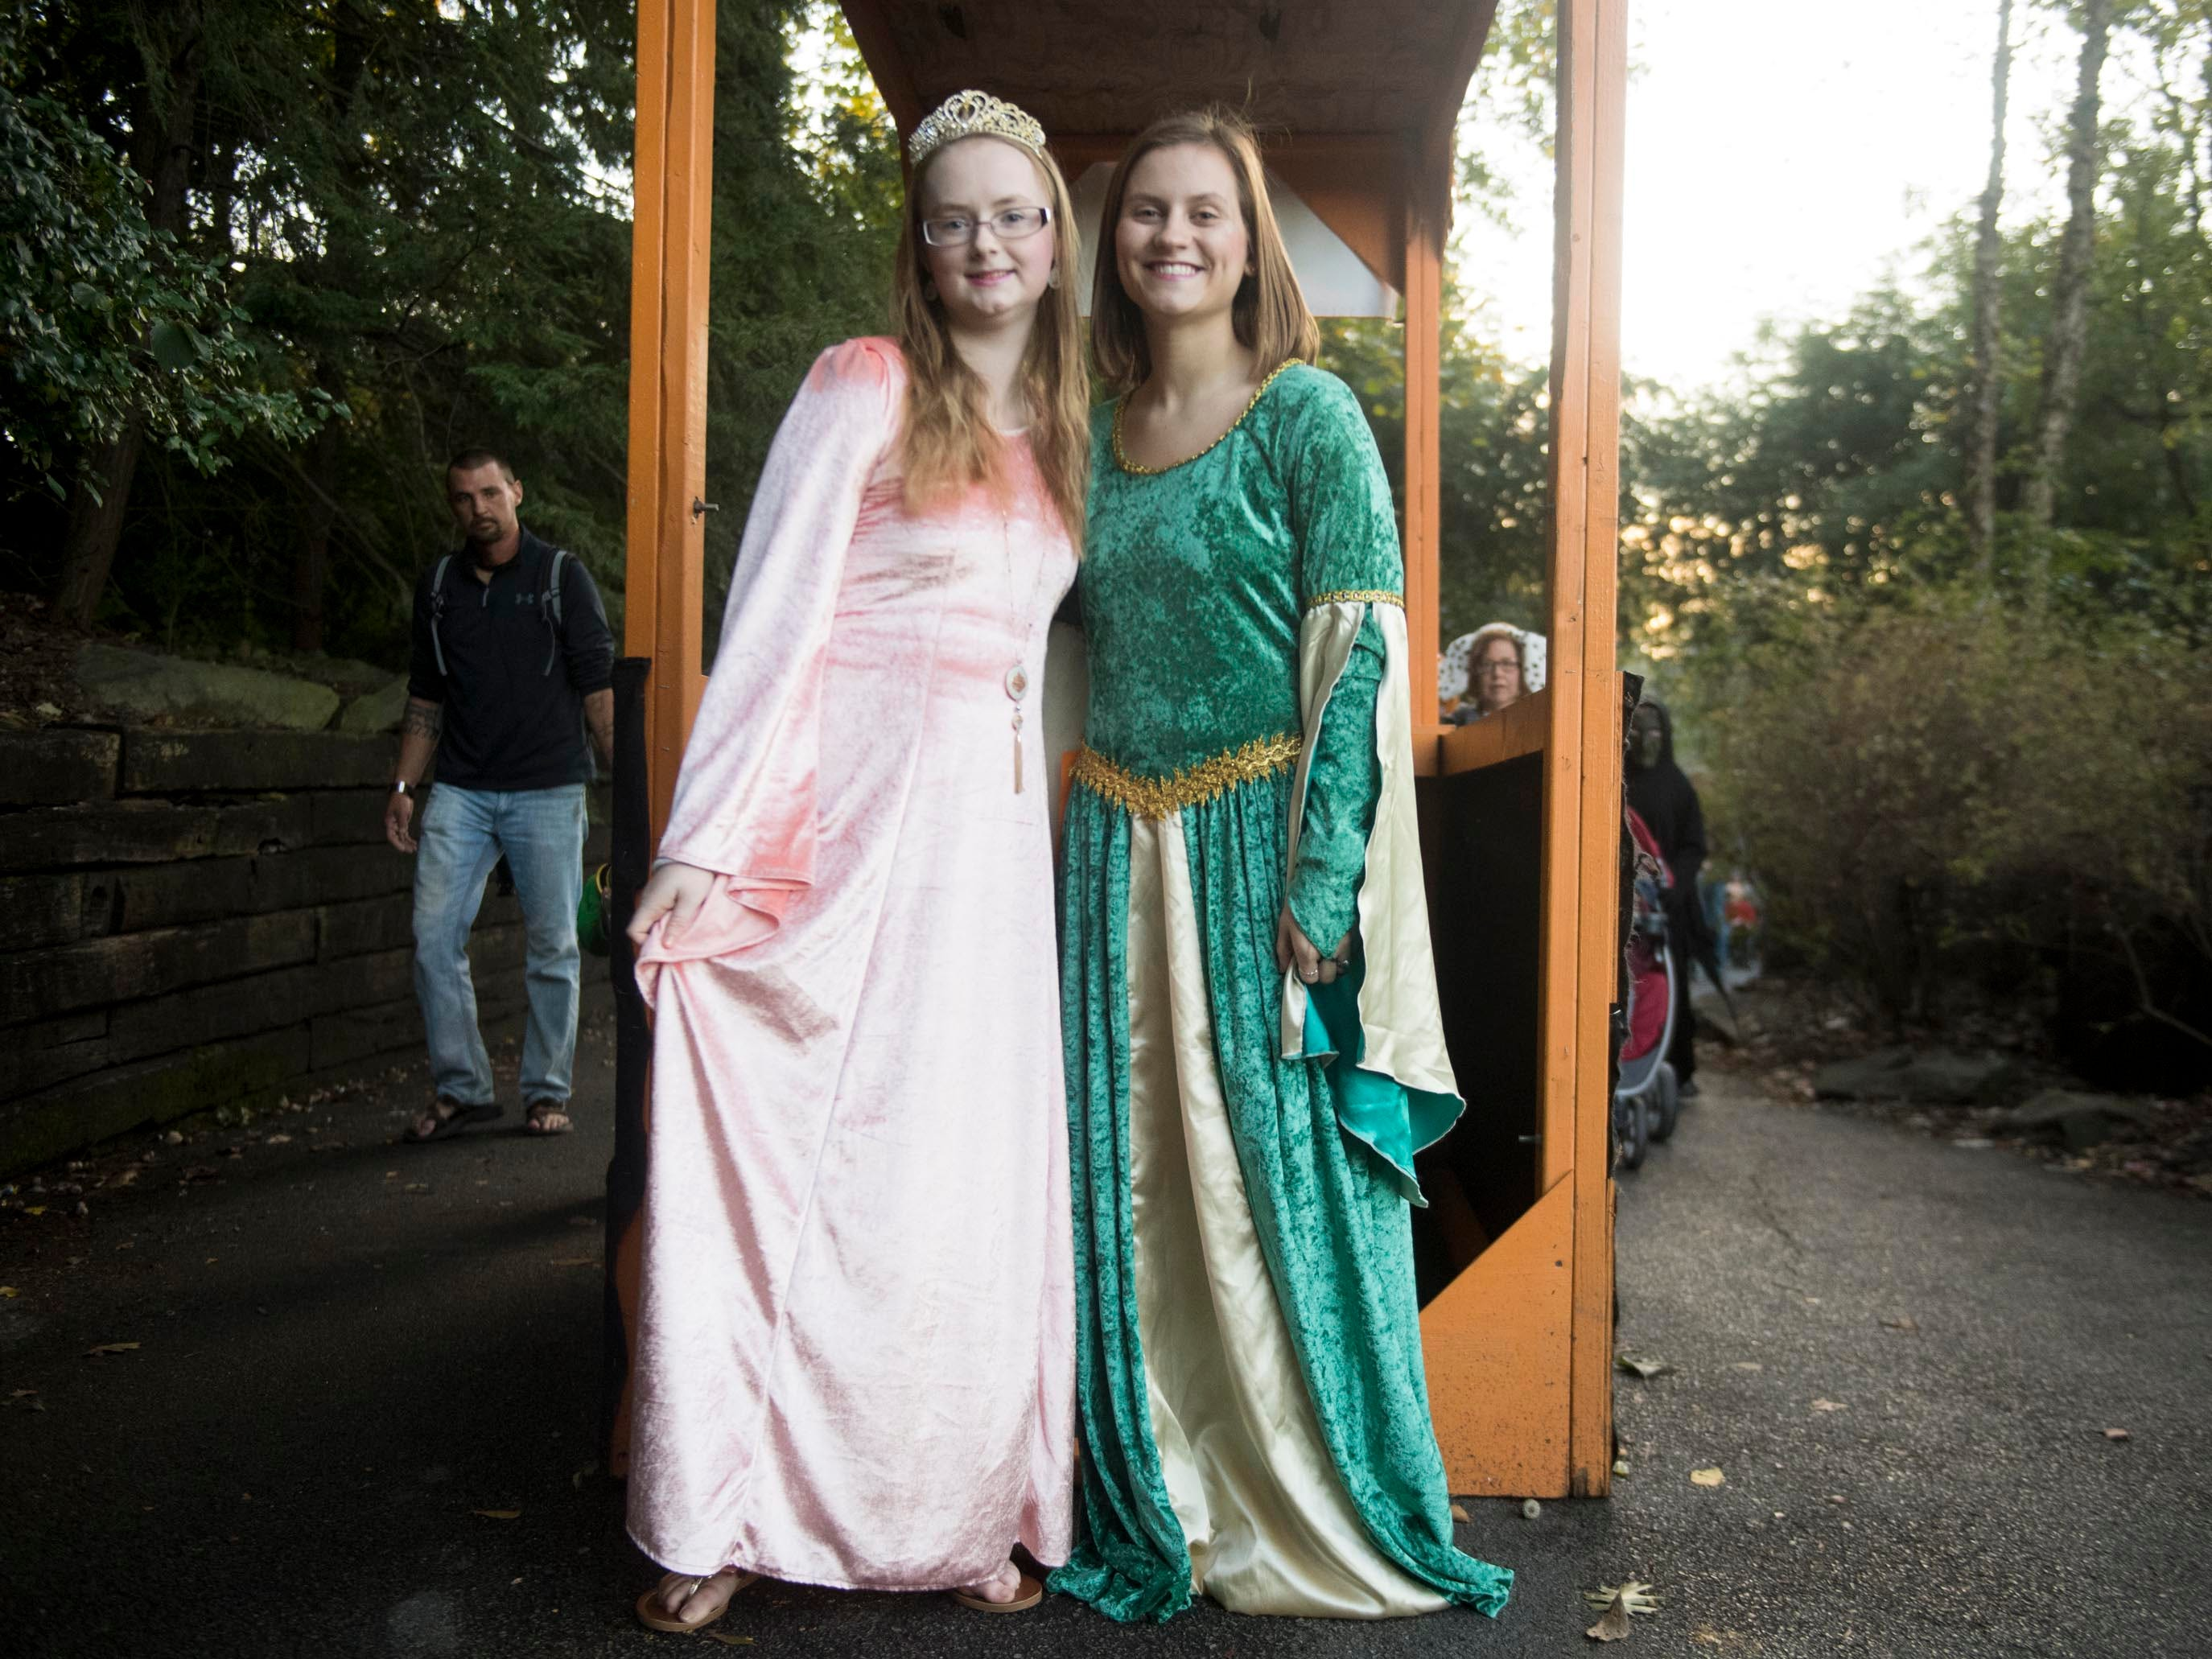 Haven Fisher, left, and Josie Grussing are dressed as princesses and handed out candy during Zoo Knoxville's Boo! at the Zoo on Saturday, October 20, 2018.